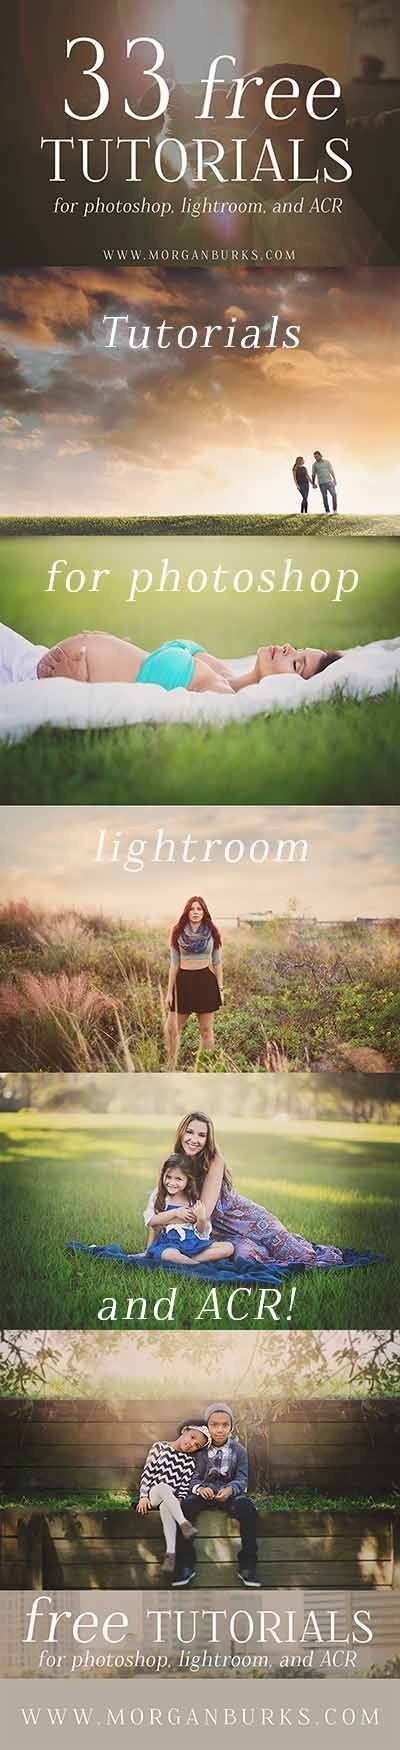 33 Free Tutorials for Photoshop, Lightroom and ACR! | Photography Tips